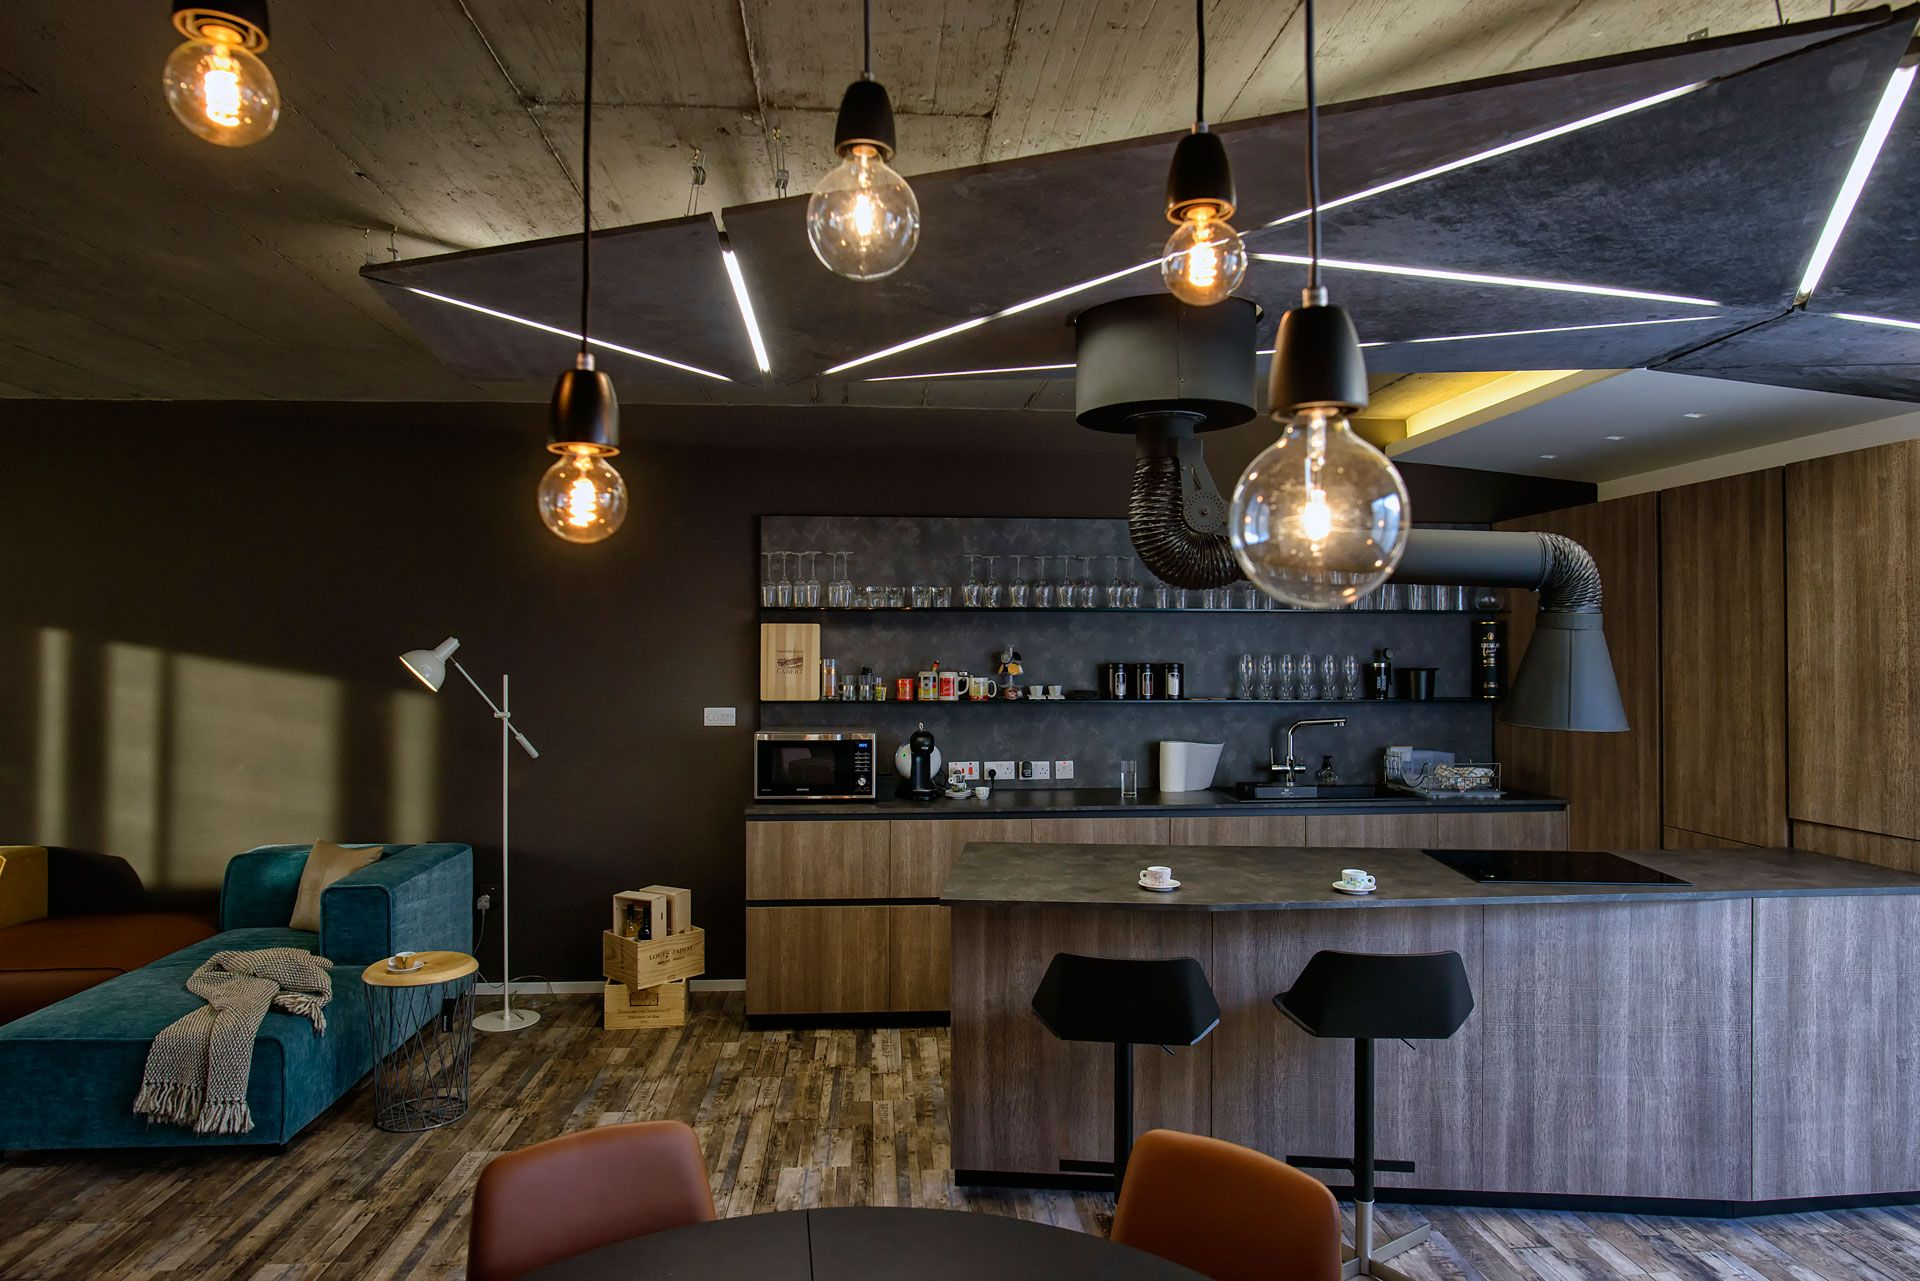 Kitchen by Aster Cucine at Brands International Bar stools, dining chairs and table, pendant lights by BoConcept at Brands International Photography - Peter M. Mercieca